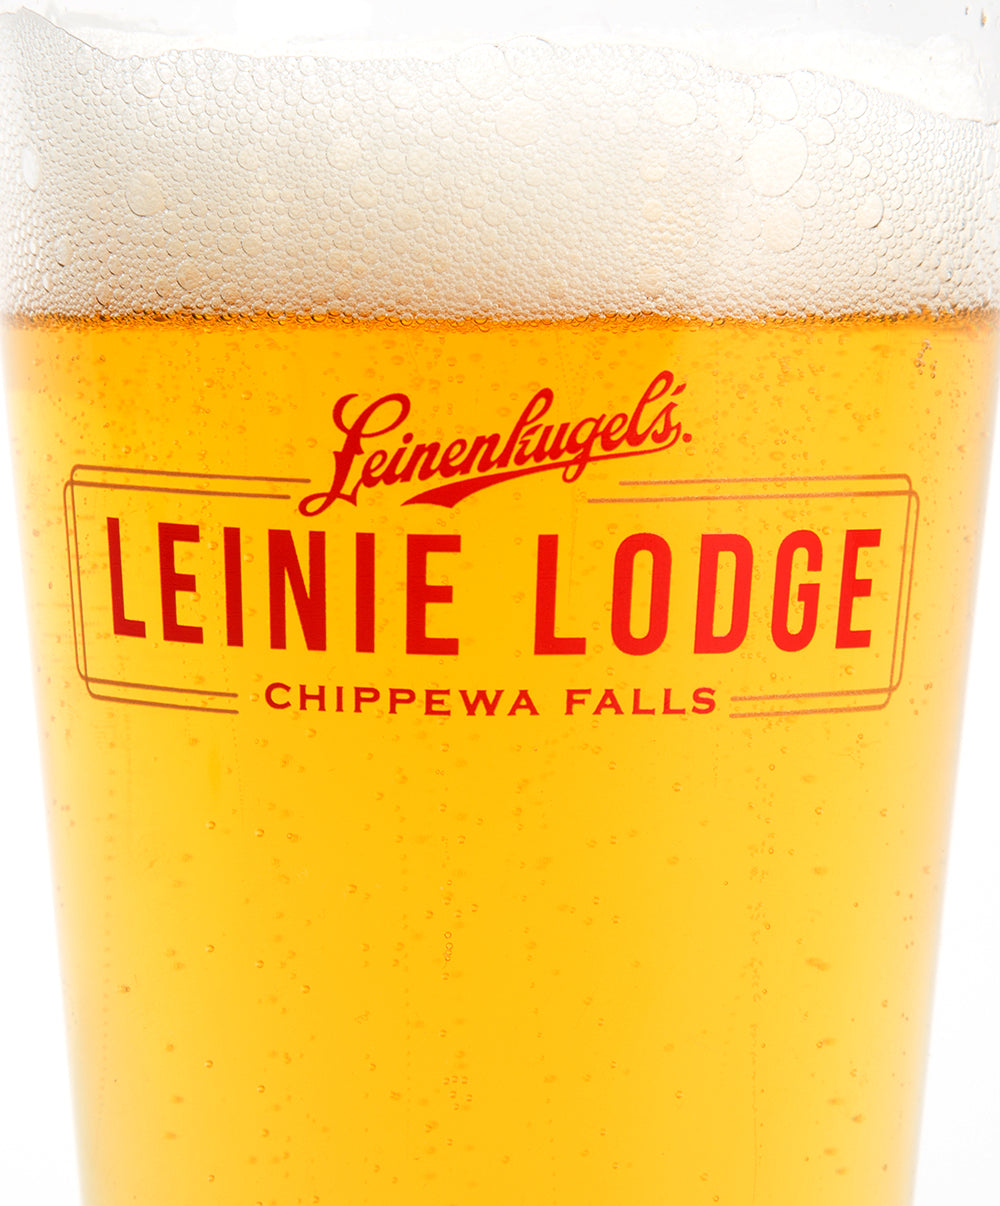 THE LEINIE LODGE PINT